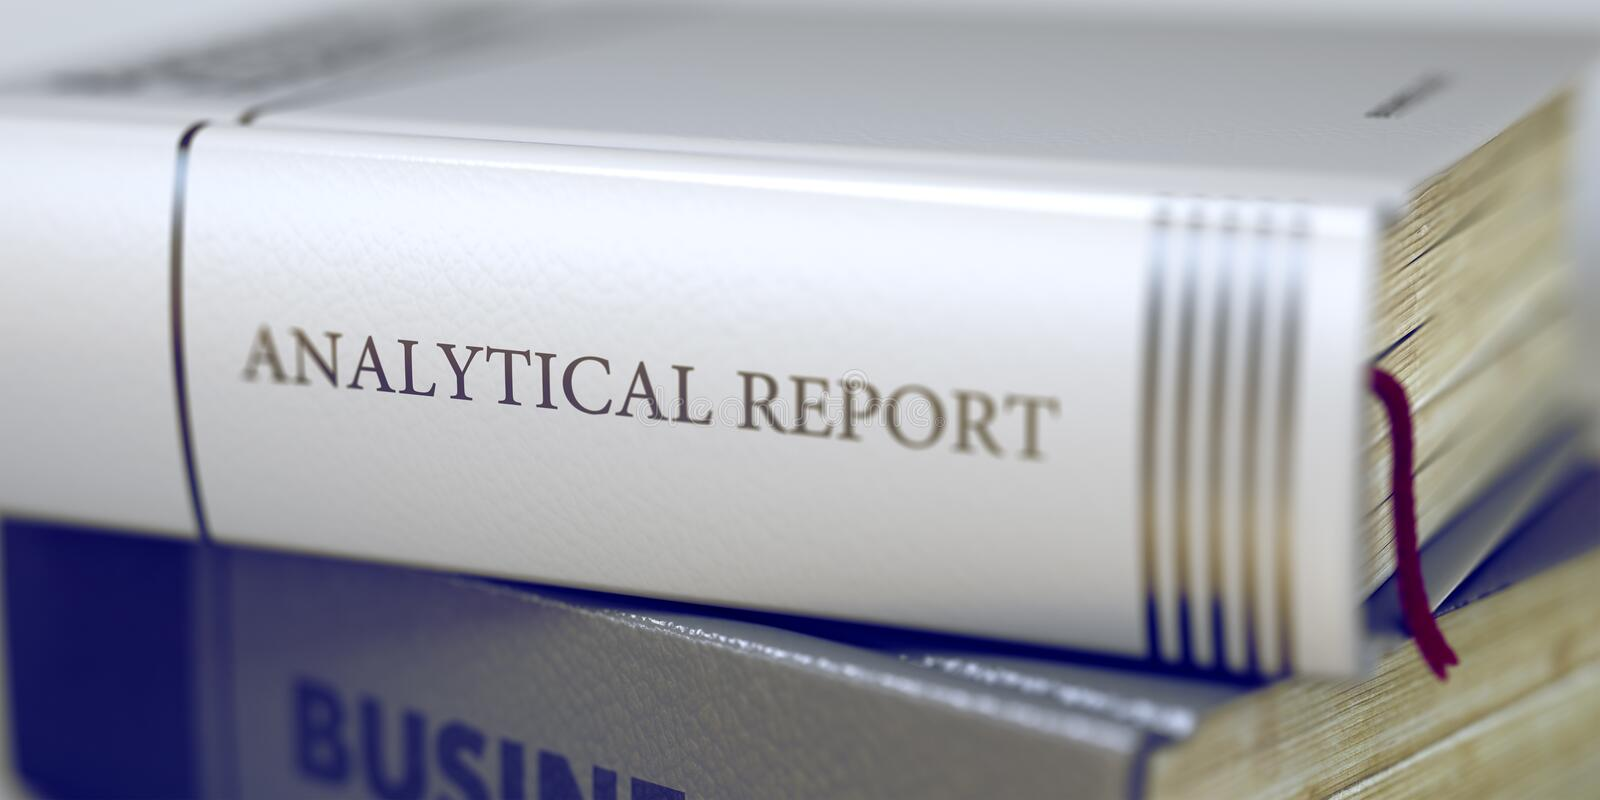 Analytical Report - Business Book Title. 3D. royalty free stock image